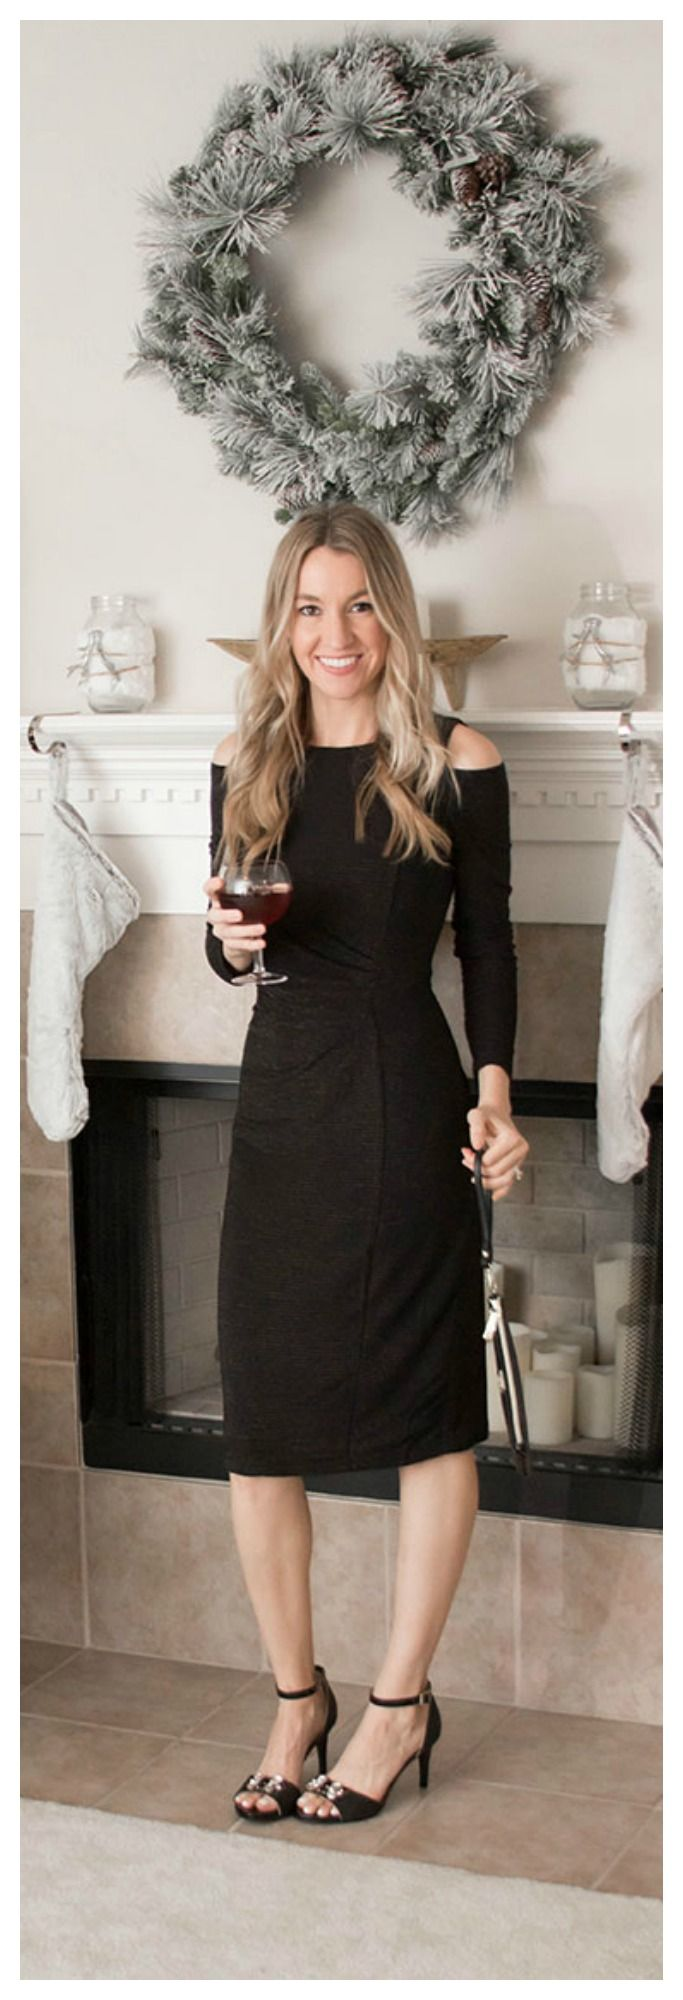 Classic Holiday Style. Black Cold Shoulder Dress. New Years Eve Style- Life By Lee